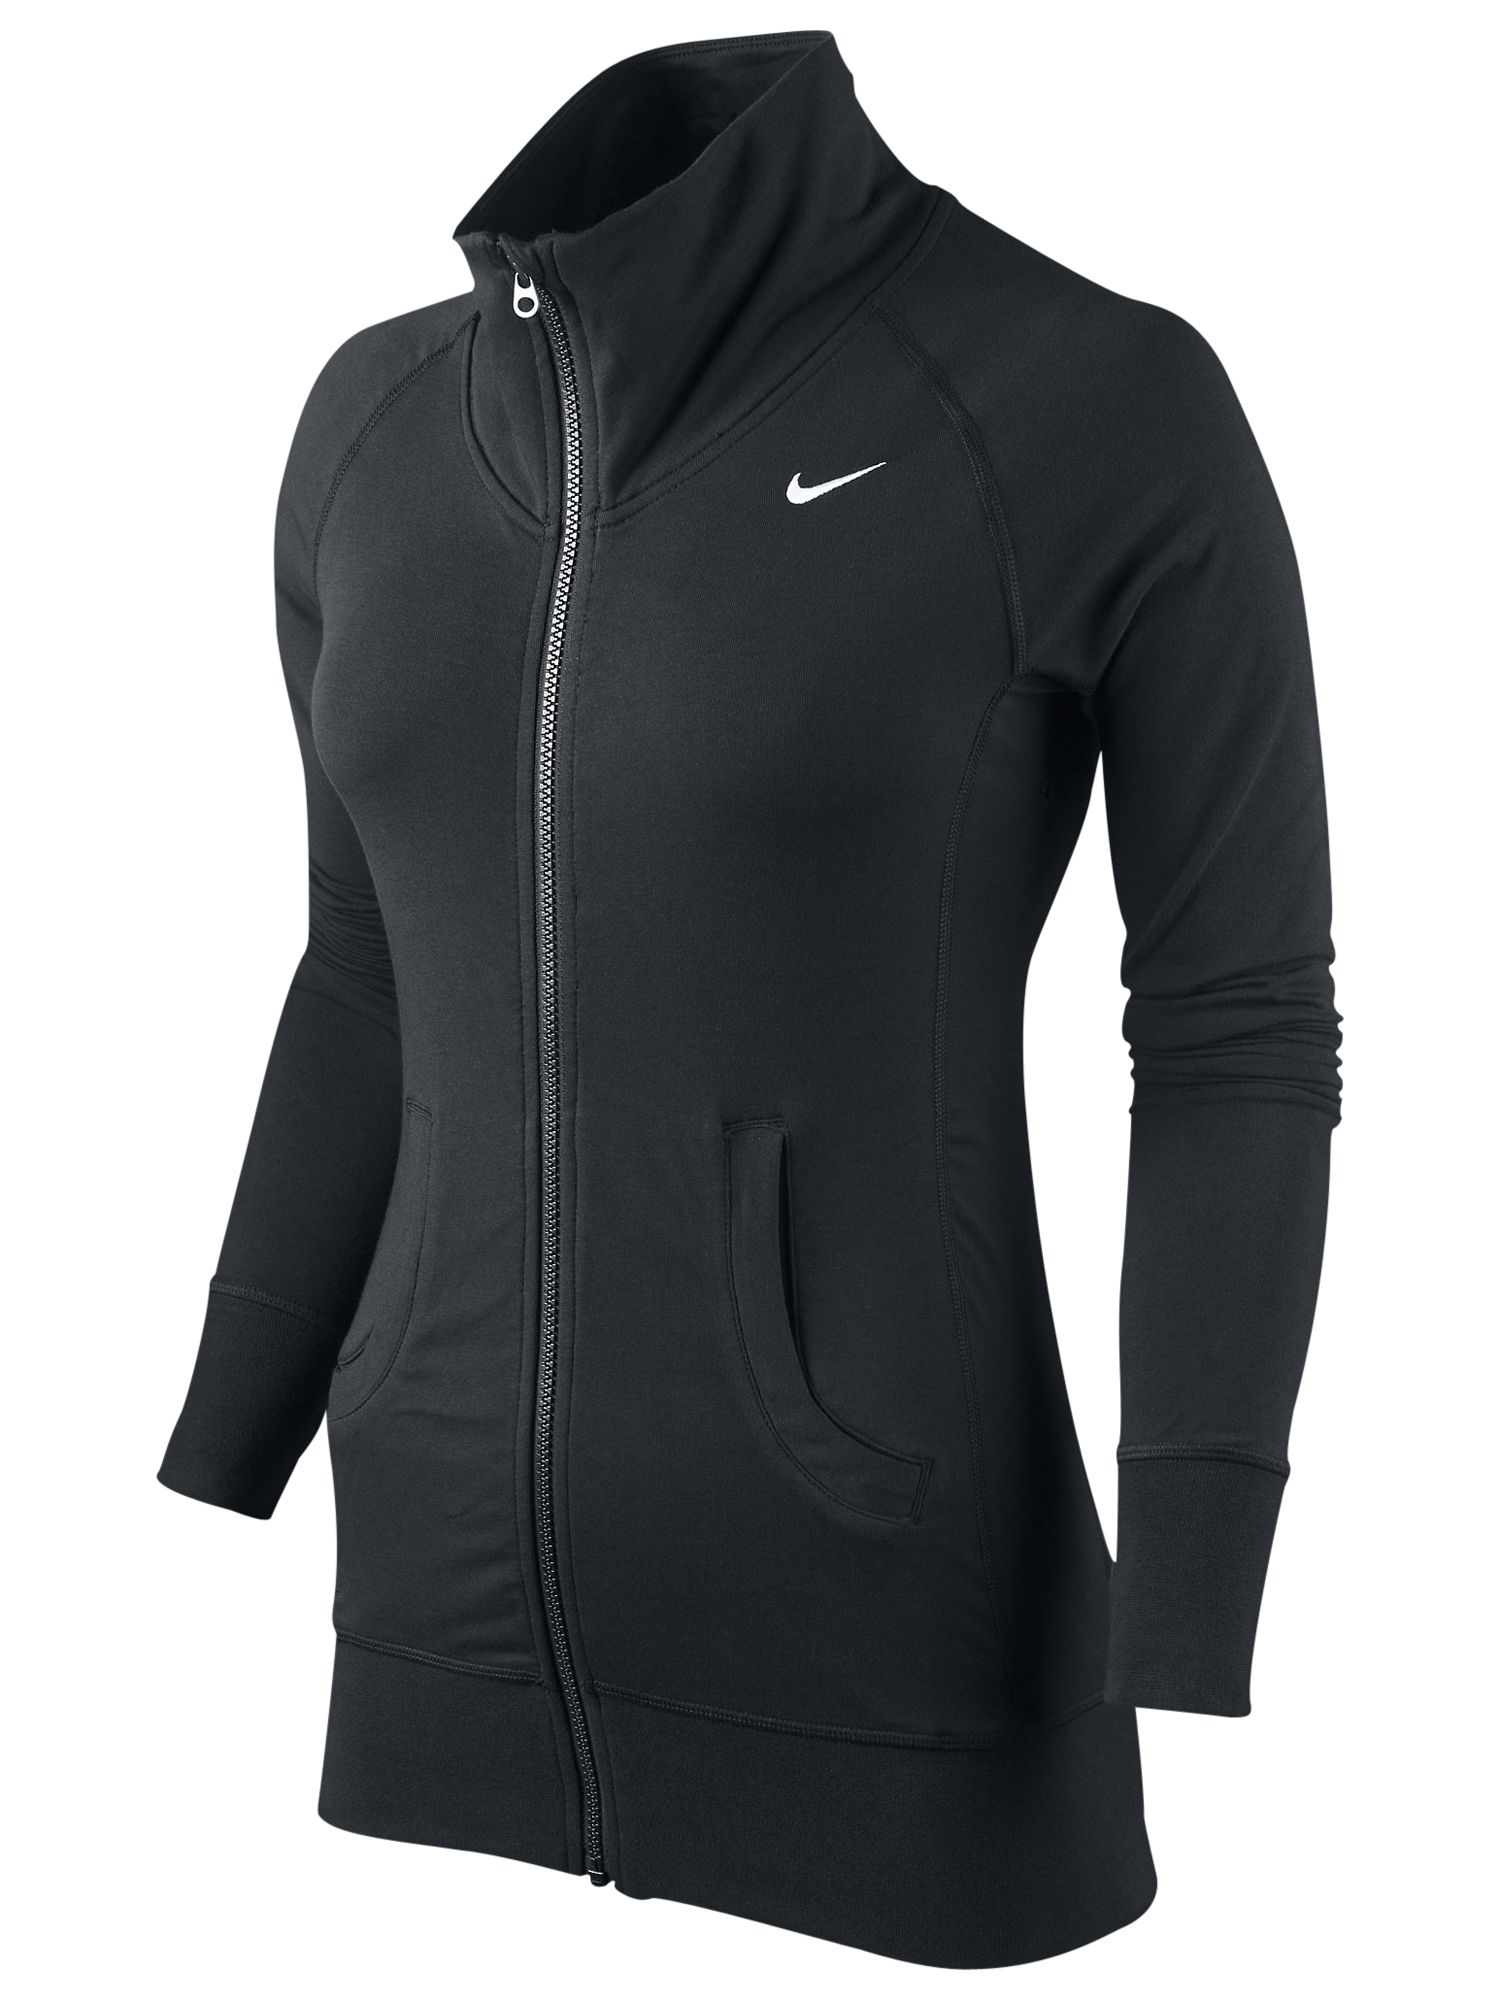 Nike Empire Jacket, Black/White